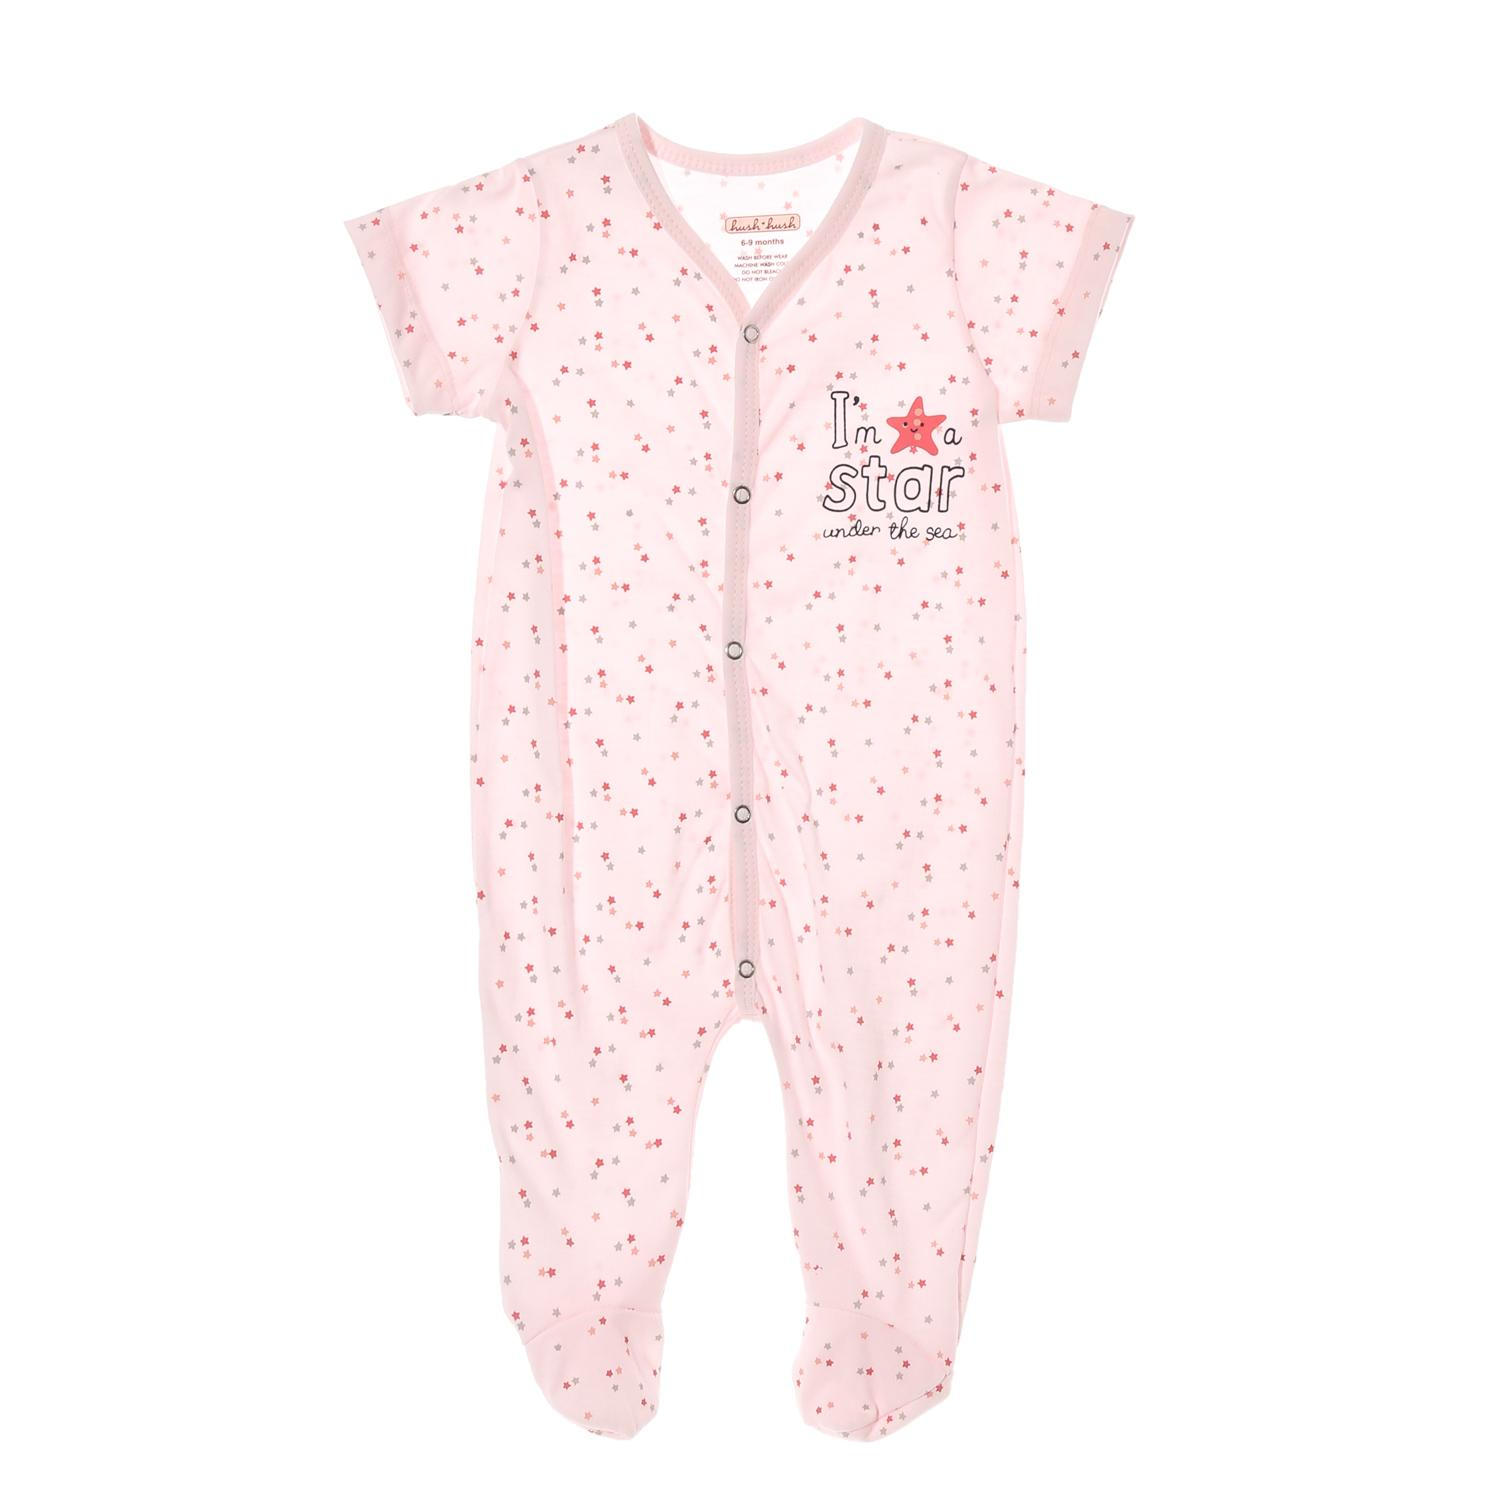 f8166588bf82 Onesies for Girls for sale - Body Suits for Girls online brands ...